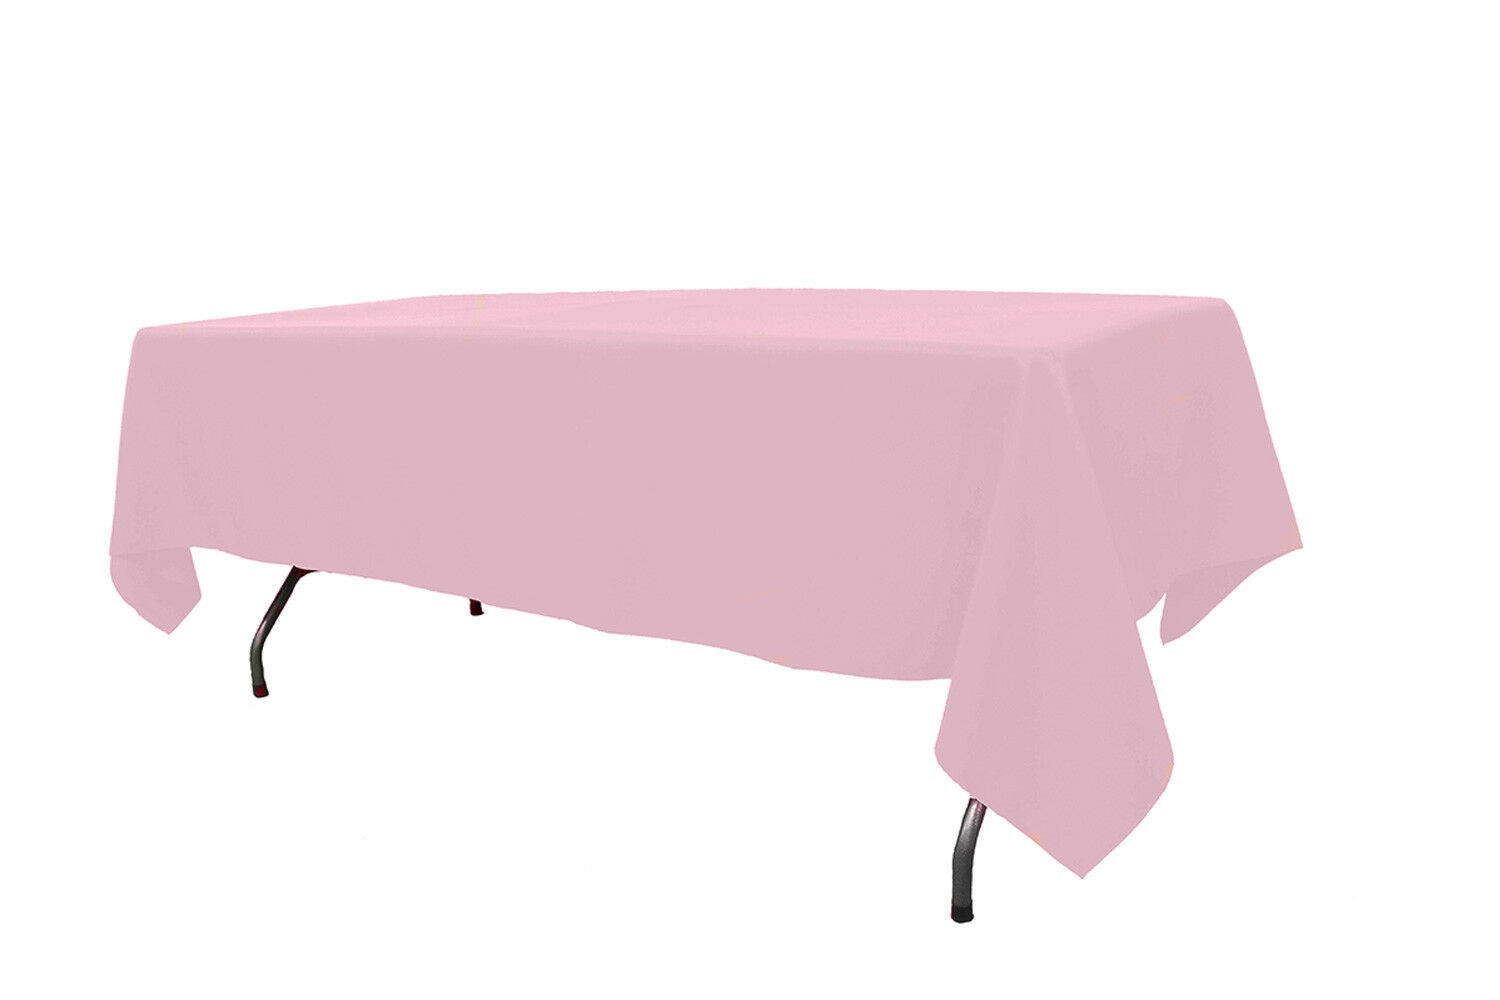 Primary image for Premium Polyester Tablecloth Pink 60 x 102 inch Rectangular